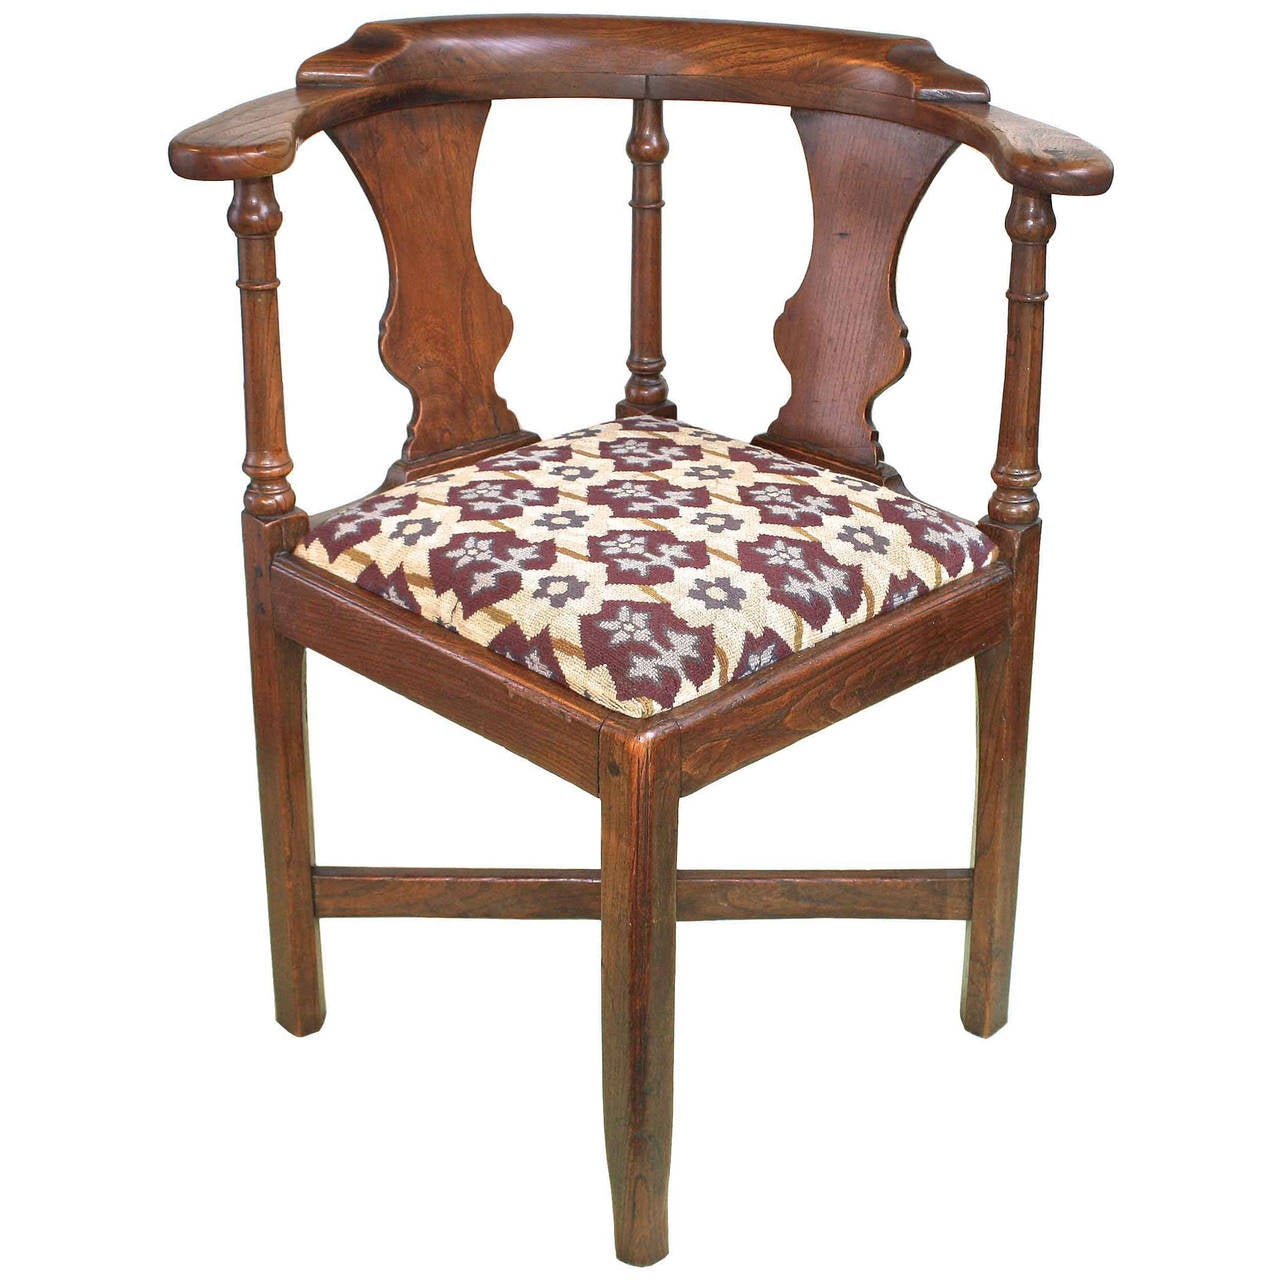 George ii corner chair at 1stdibs for Furniture chairs